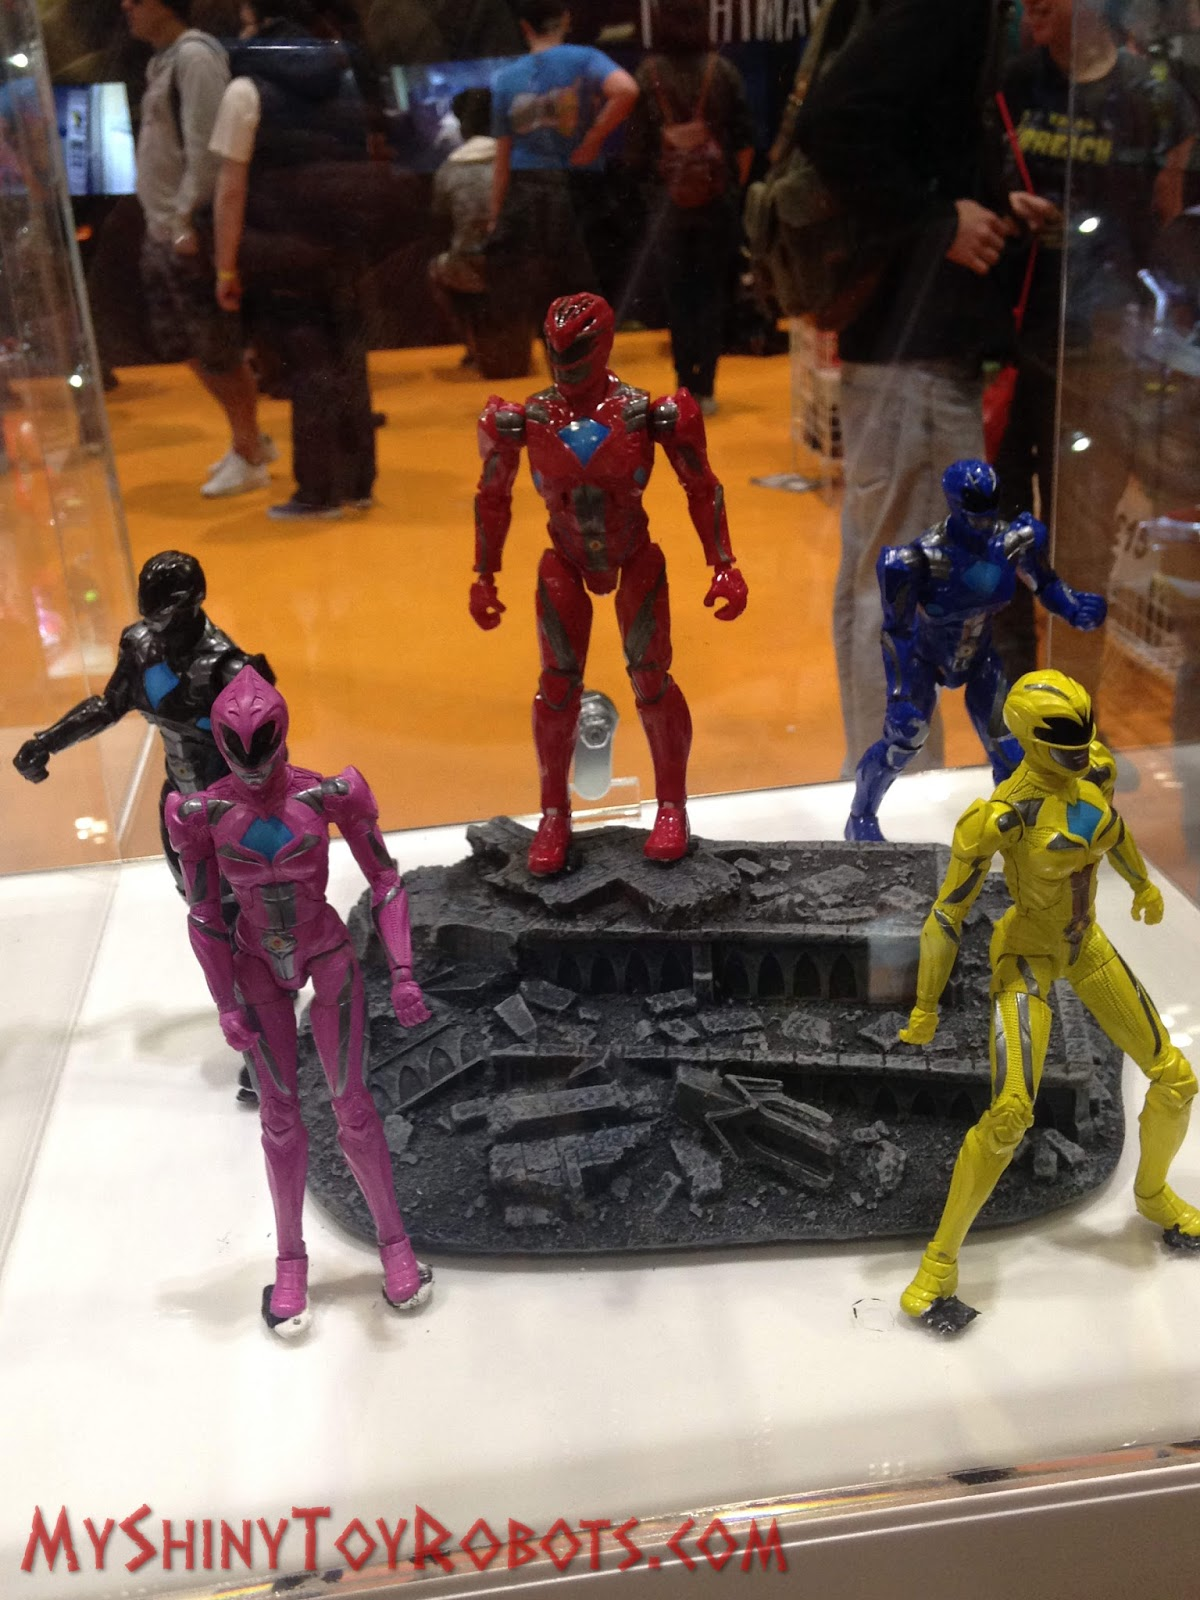 2017 Power Rangers Movie Toys At MCM London Comic Con